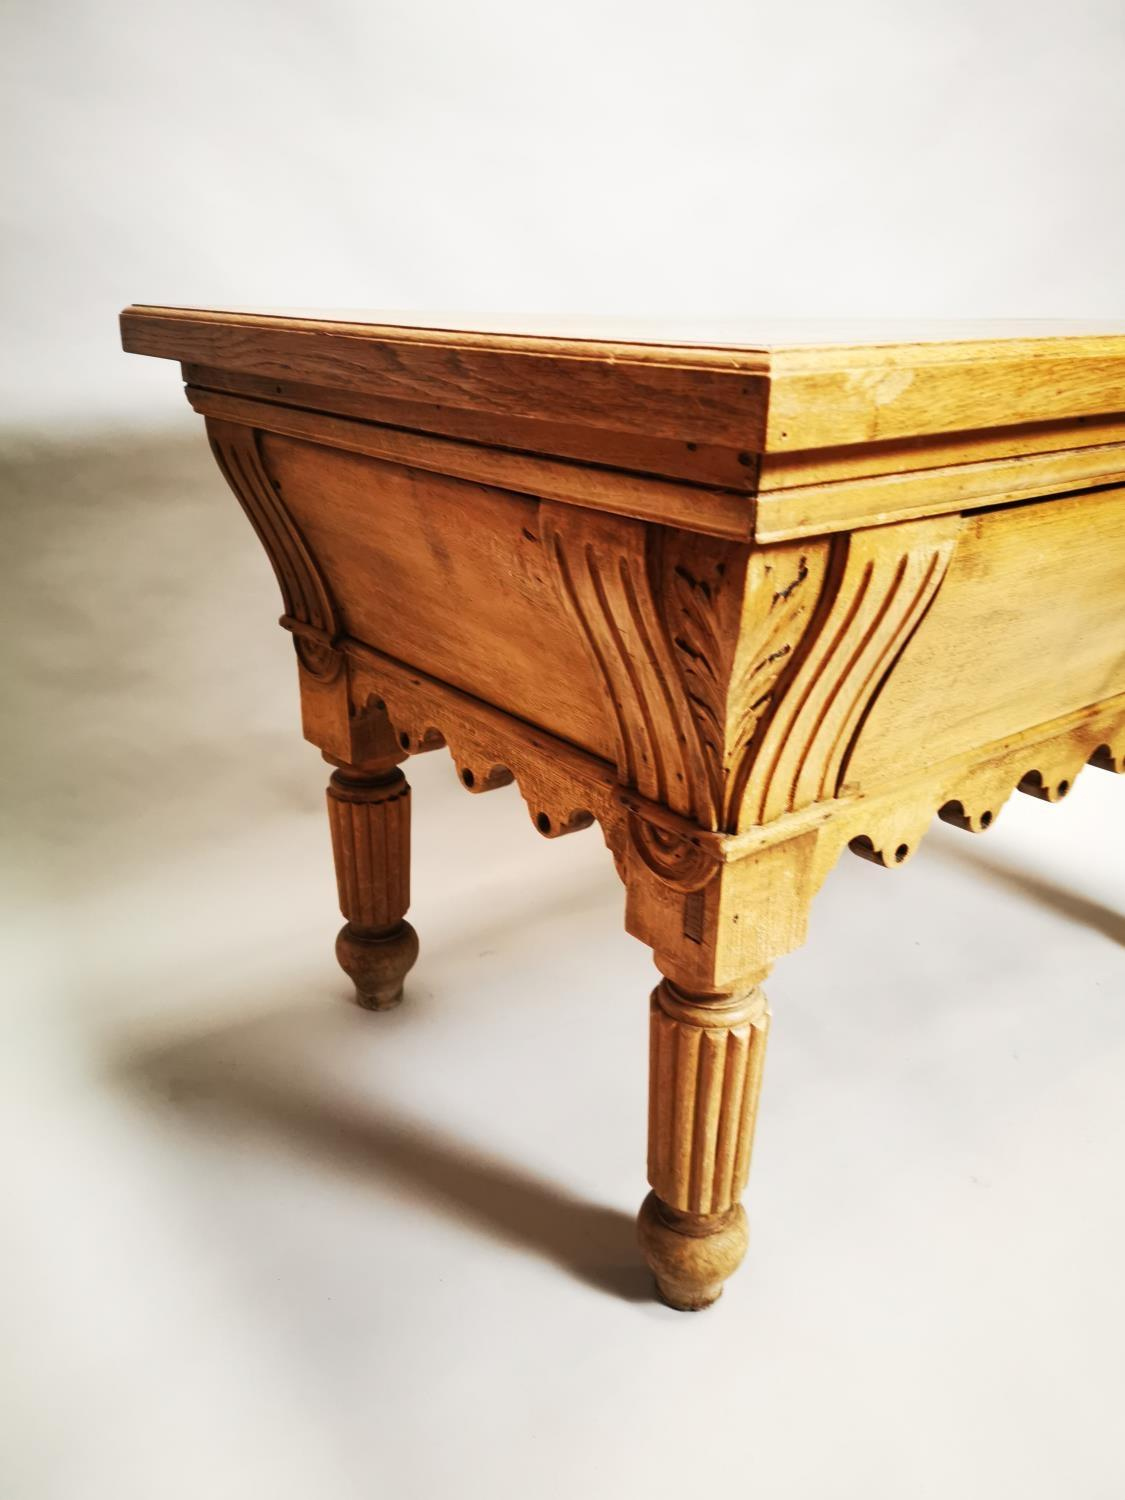 Early 20th C. pine and oak butchers table - Image 3 of 12